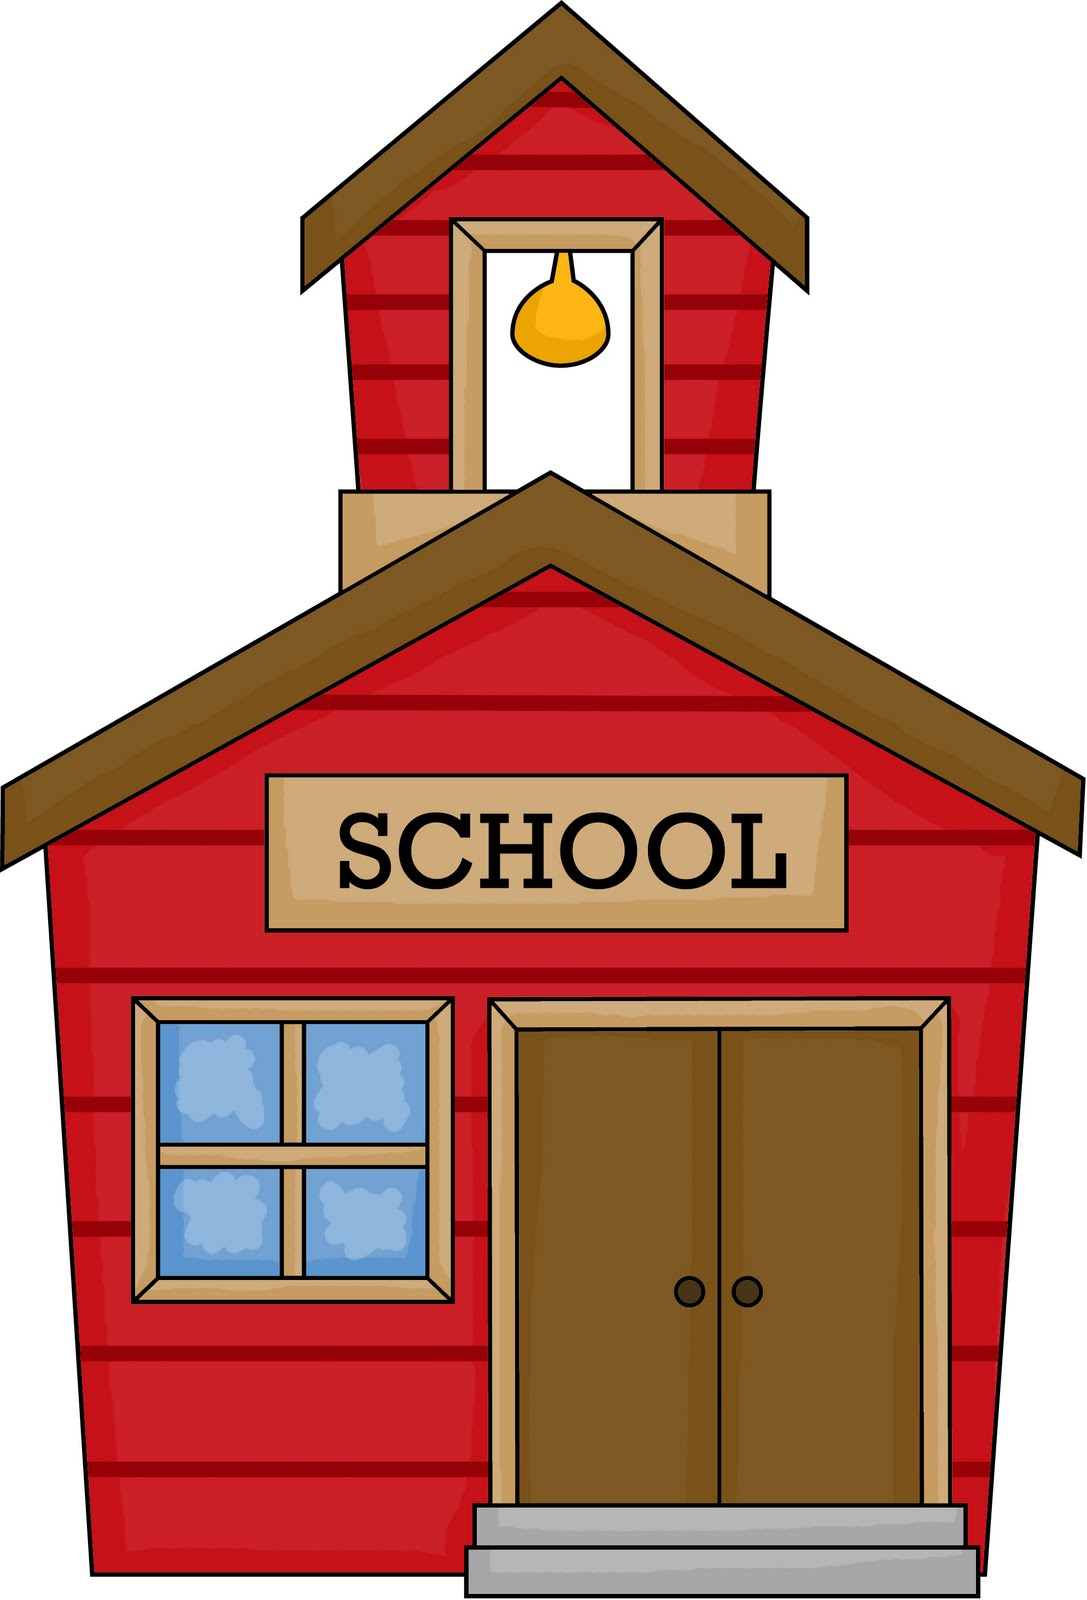 School House Images-school house images-10